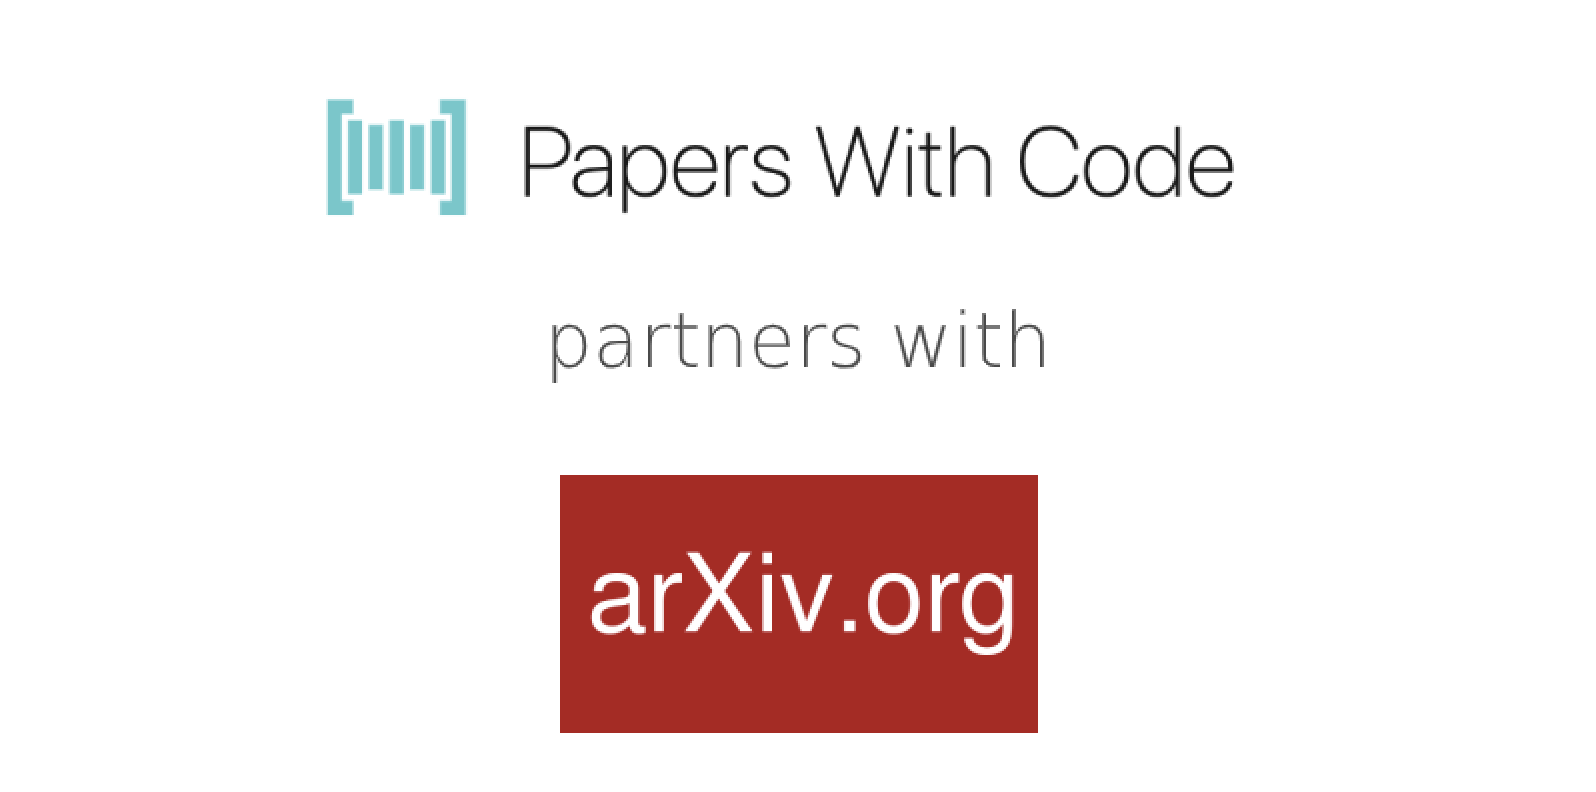 Papers with Code partners with arXiv